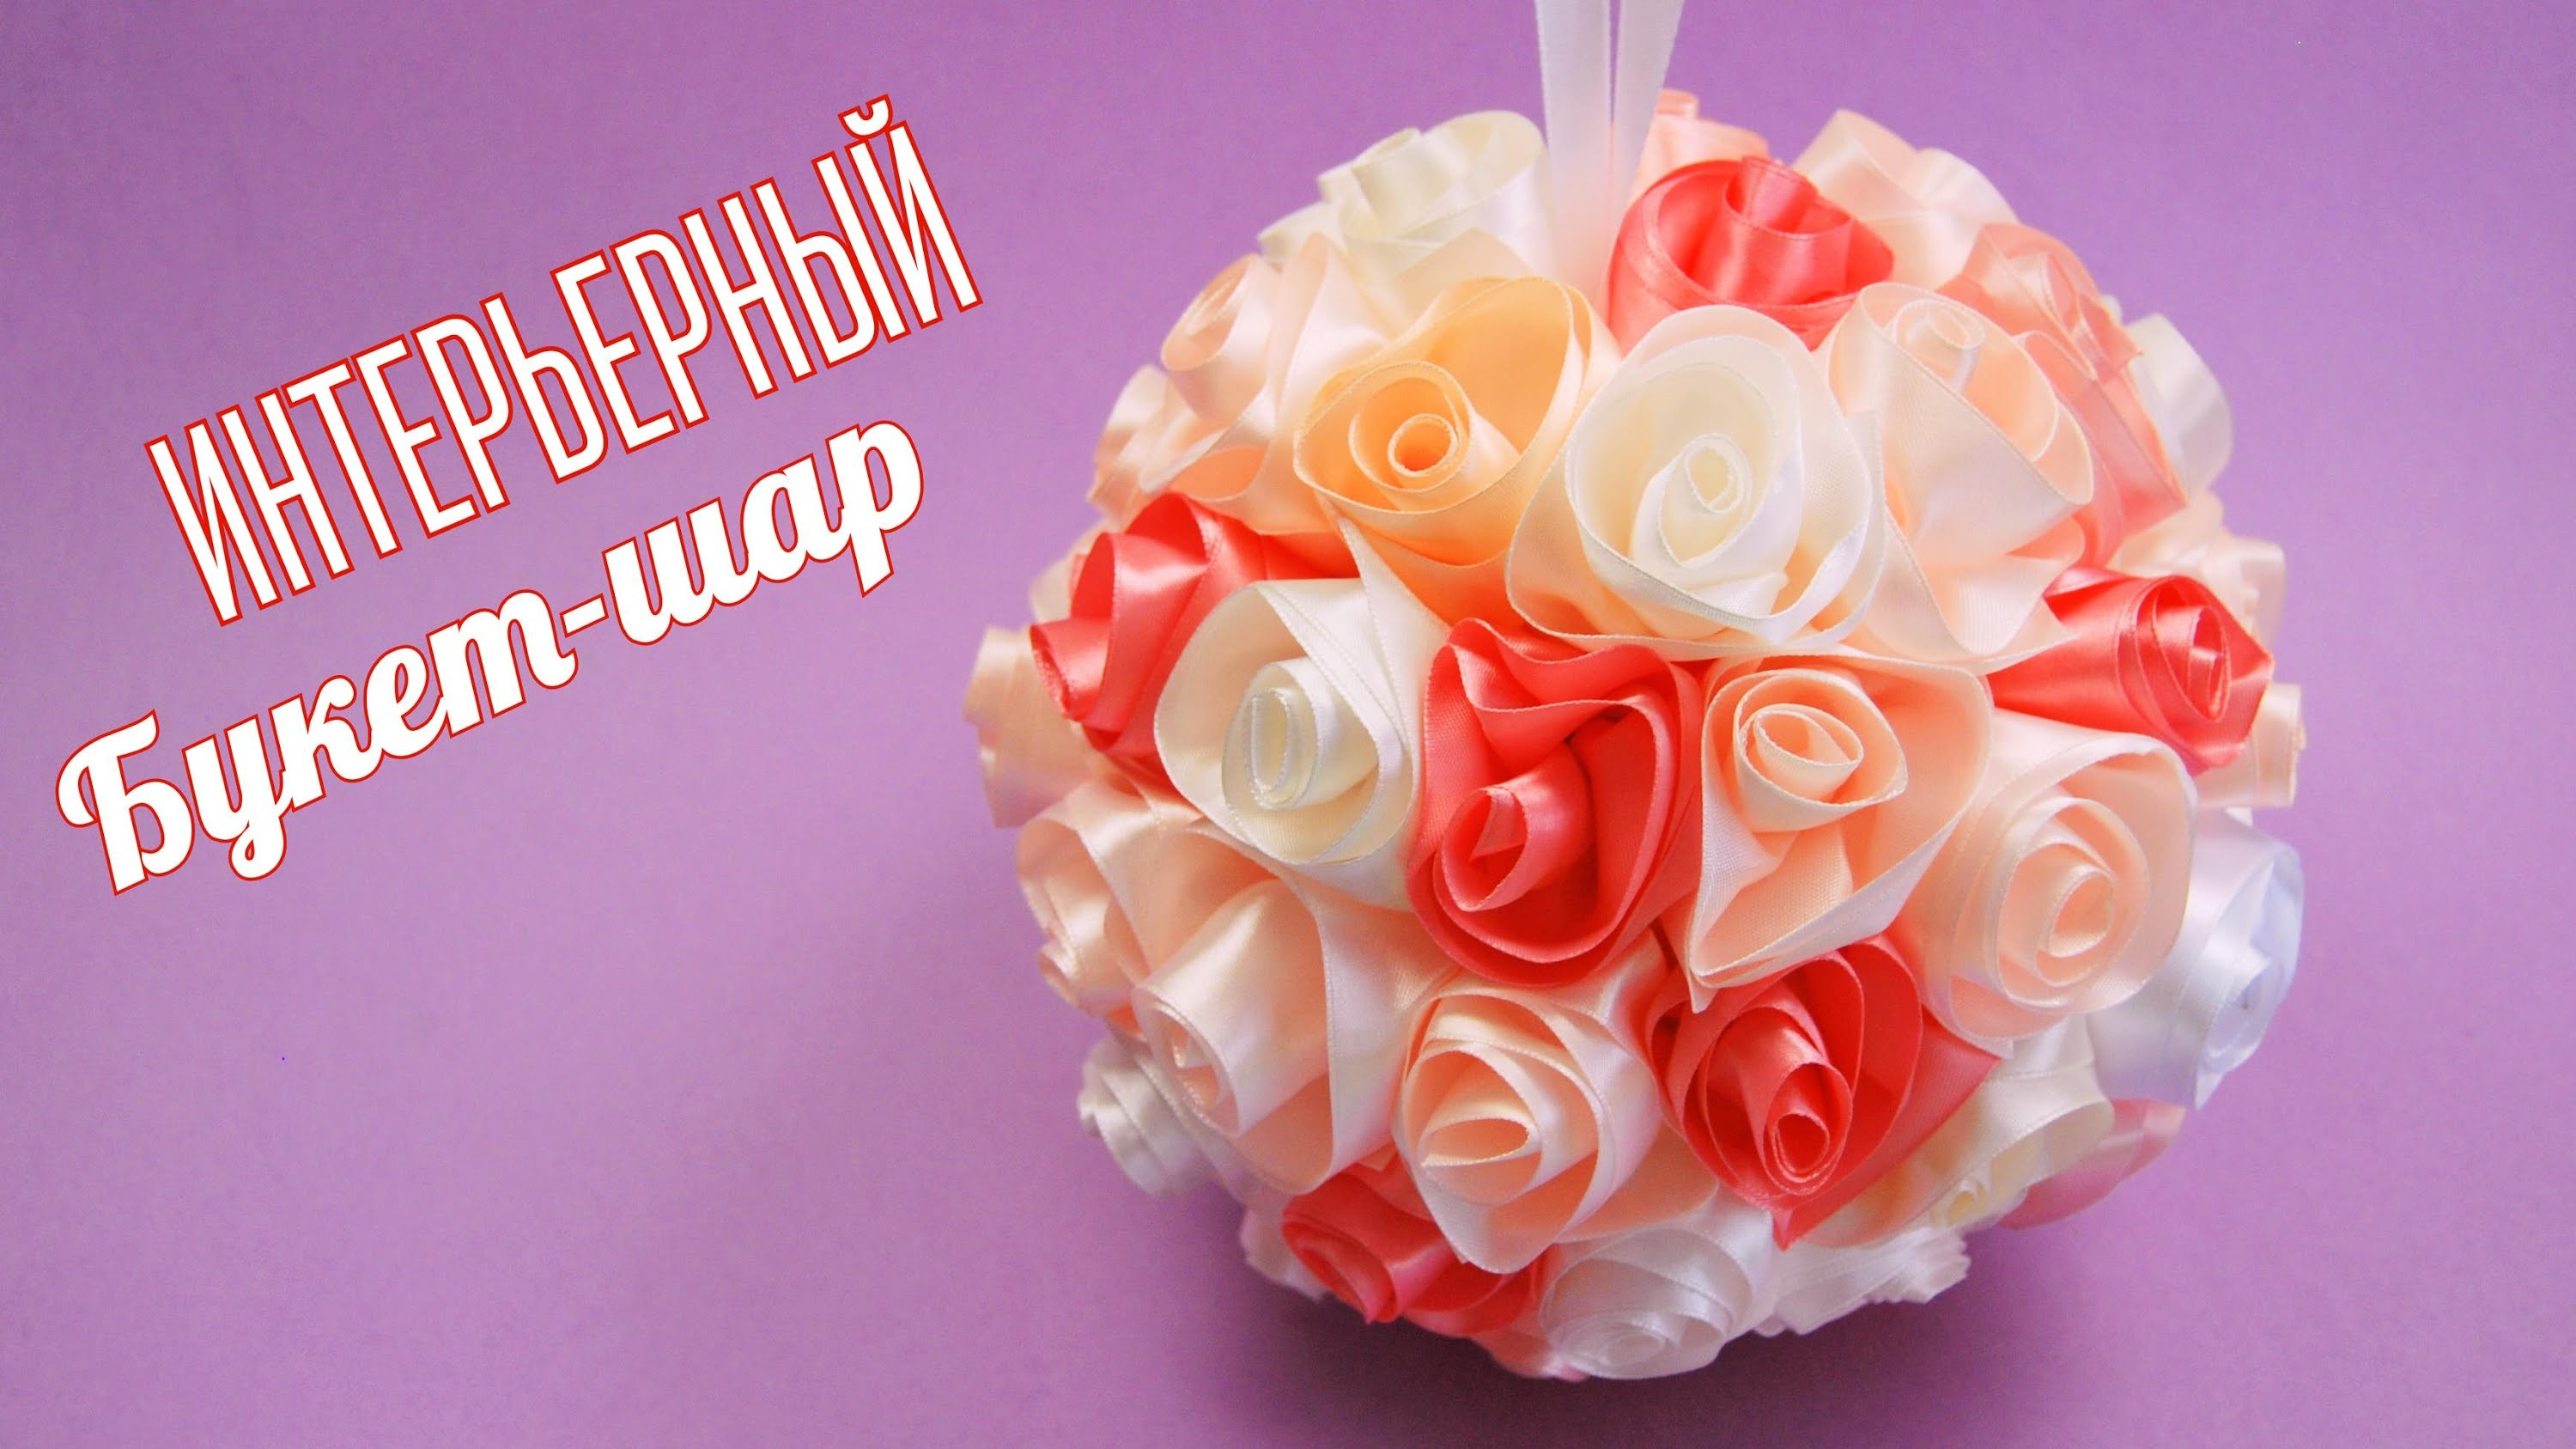 Букет Шар для интерьера или топиария. How to: INTERIOR BOUQUET. ✿ NataliDoma